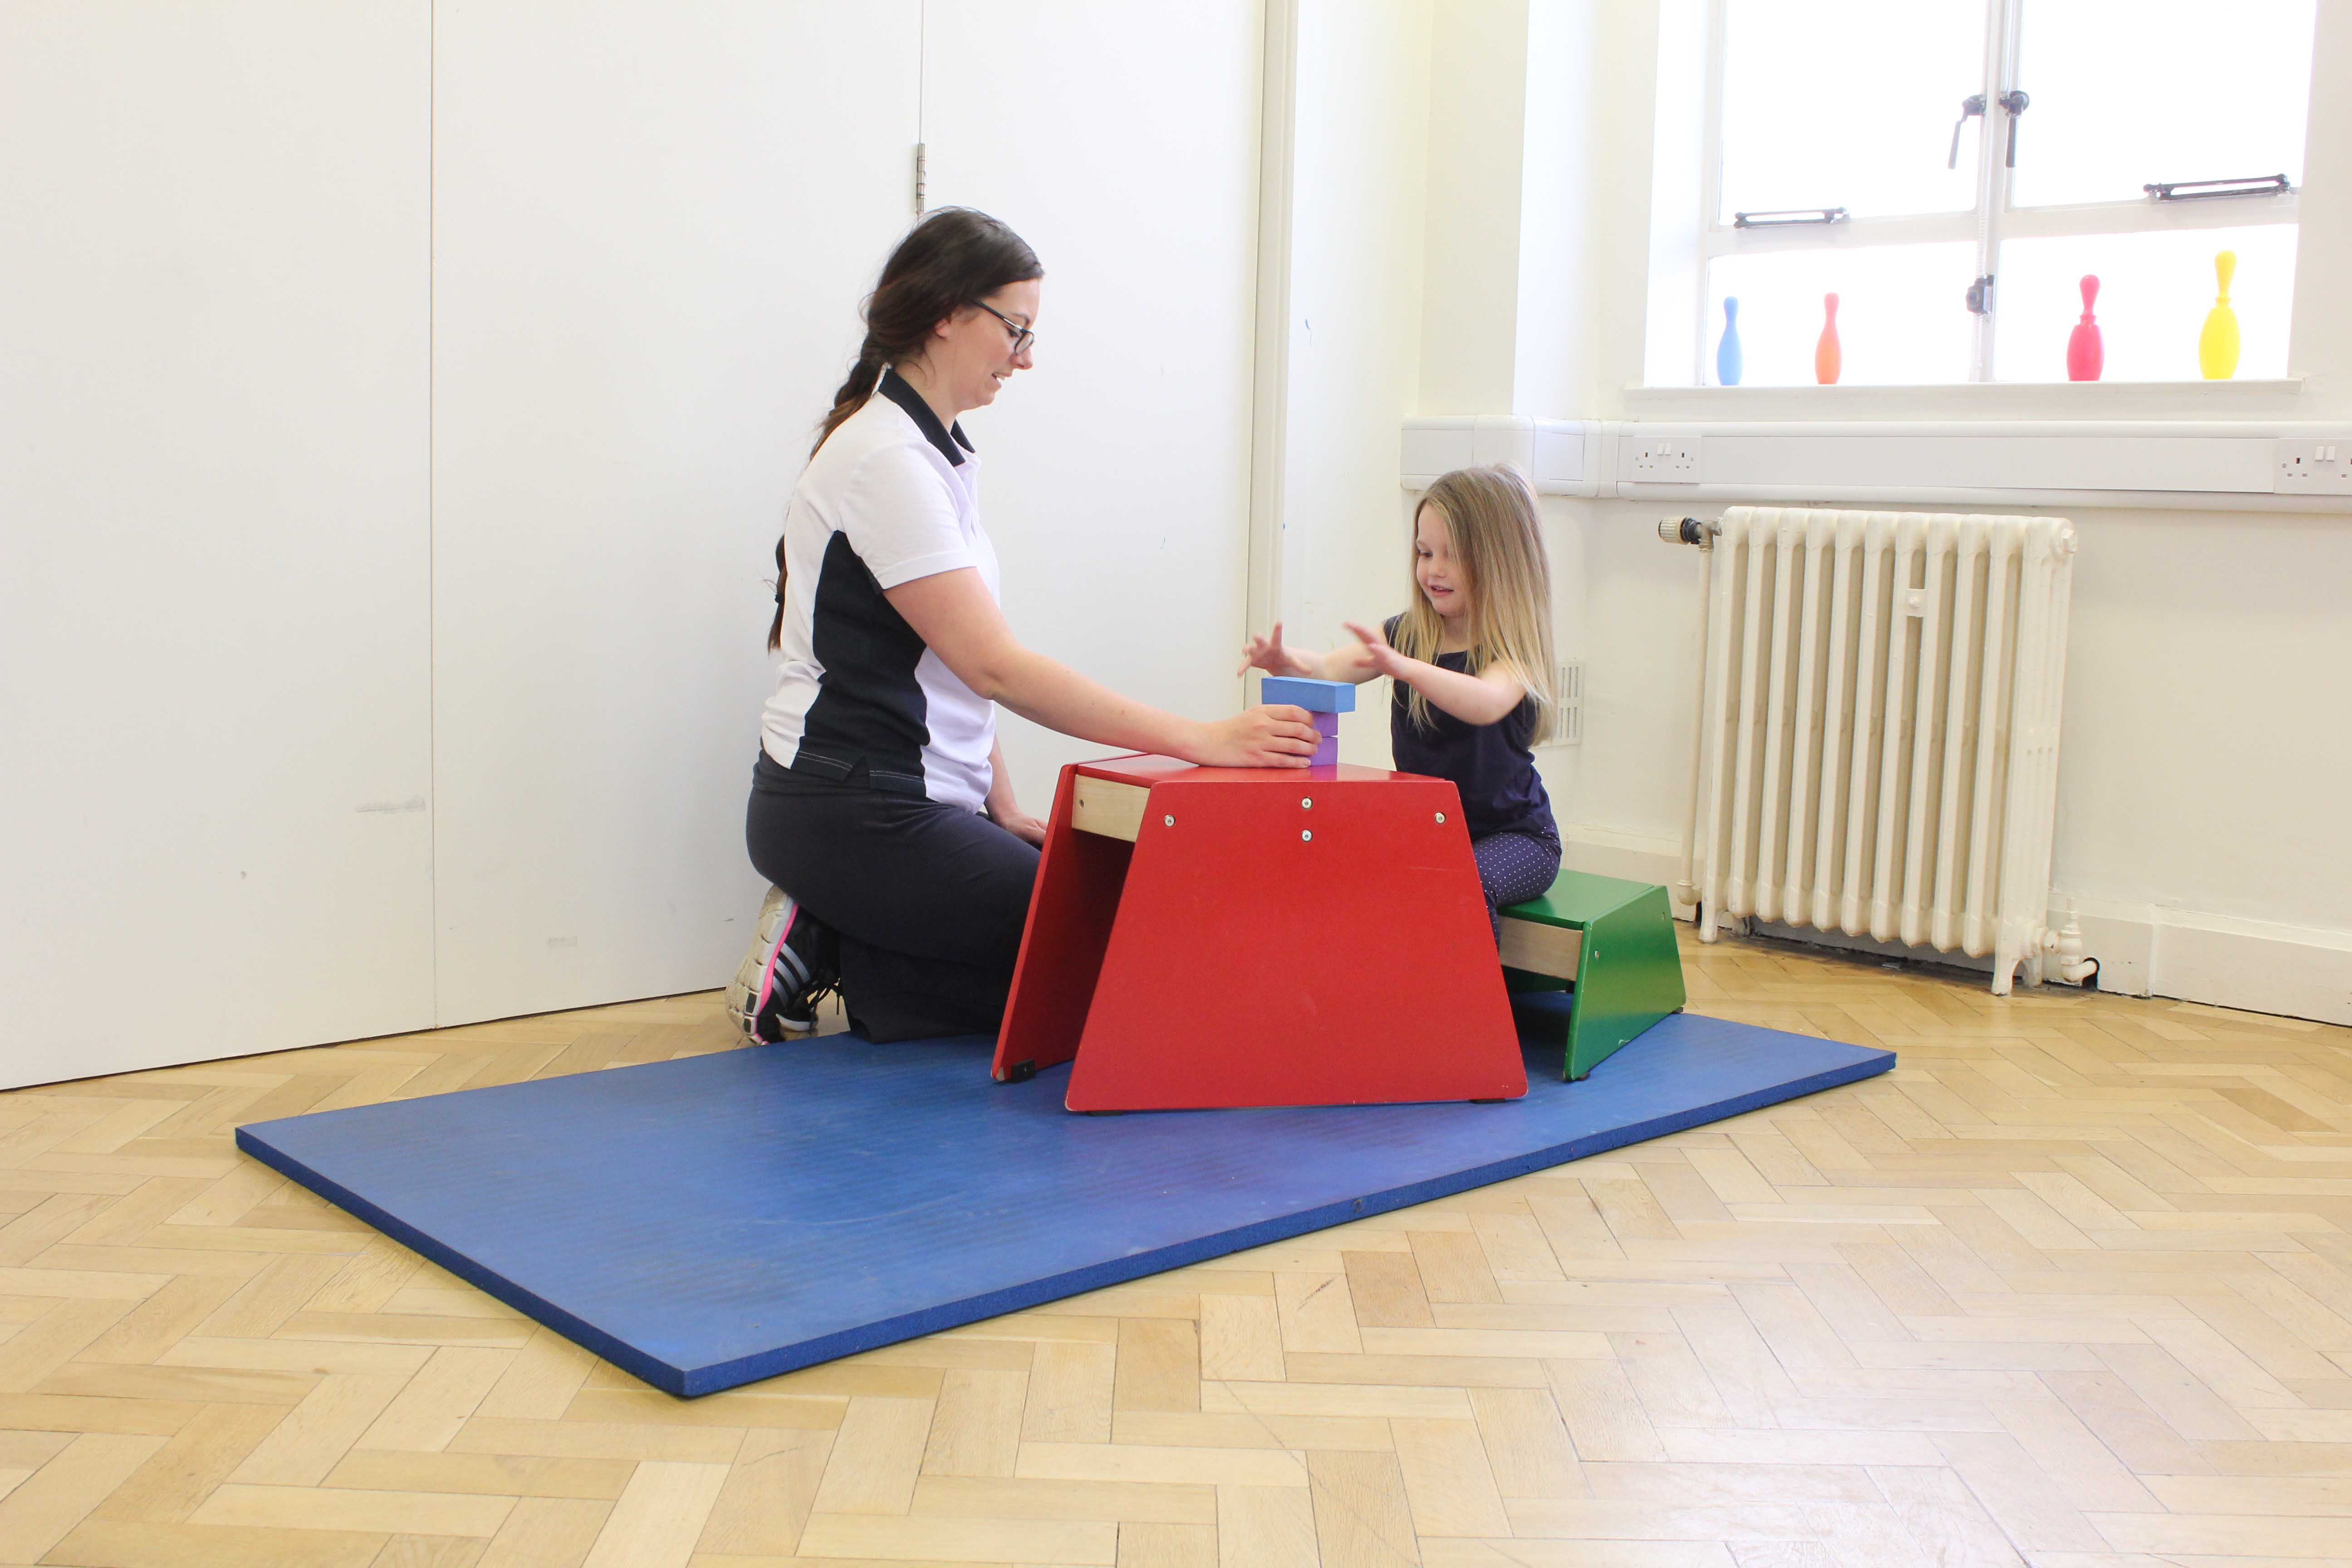 Functional fine motor skill exercises supervised by a neurological paediatric physiotherapist